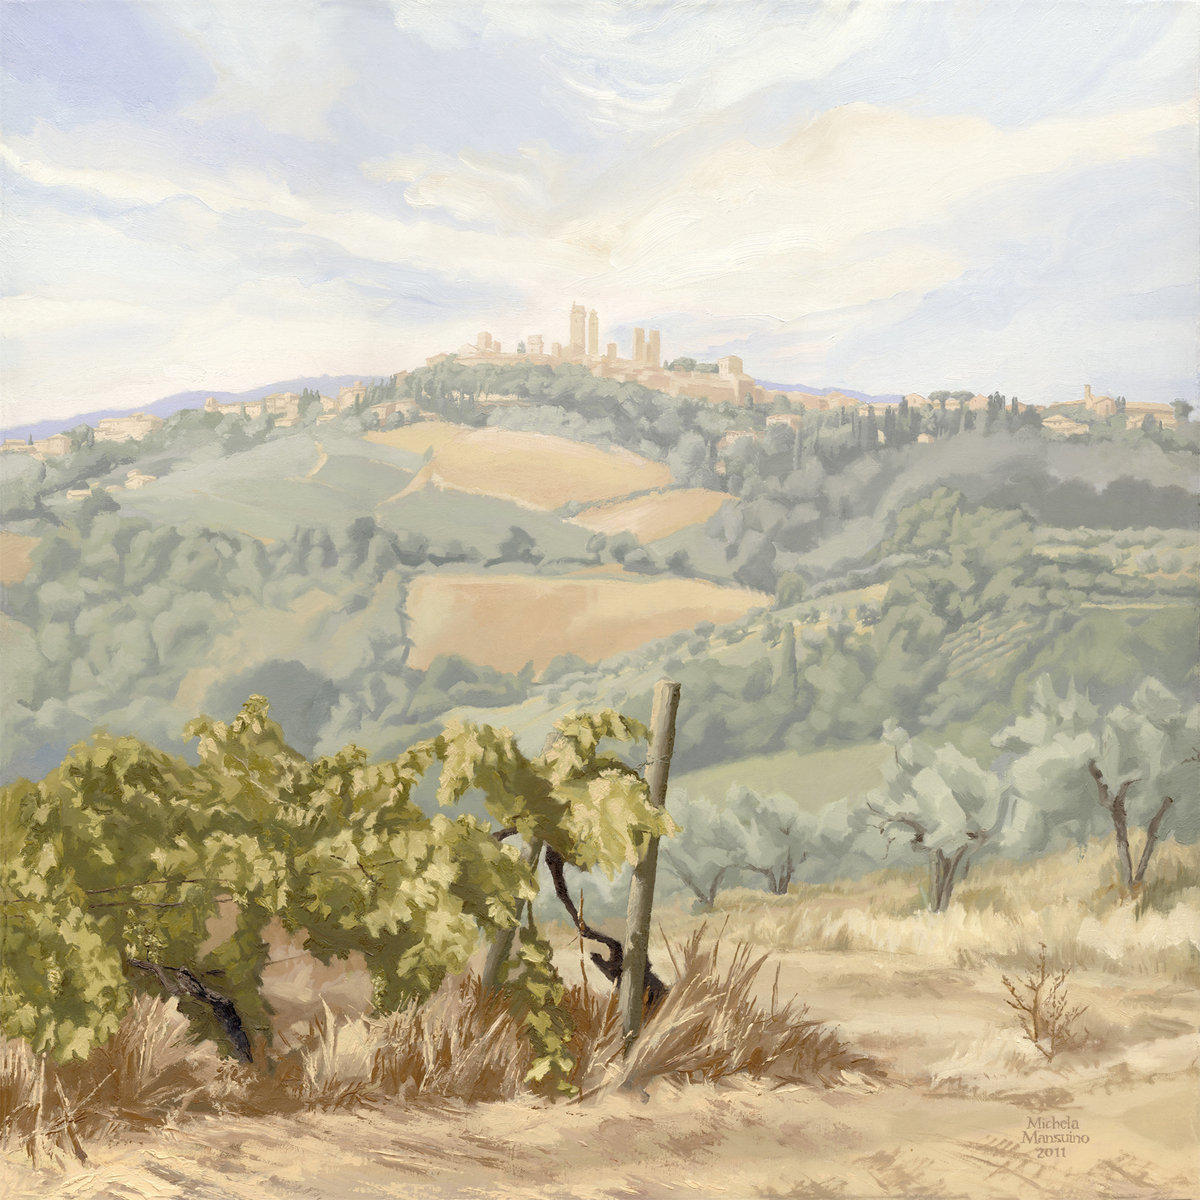 San Gimignano And The Message It Conveys (large view)